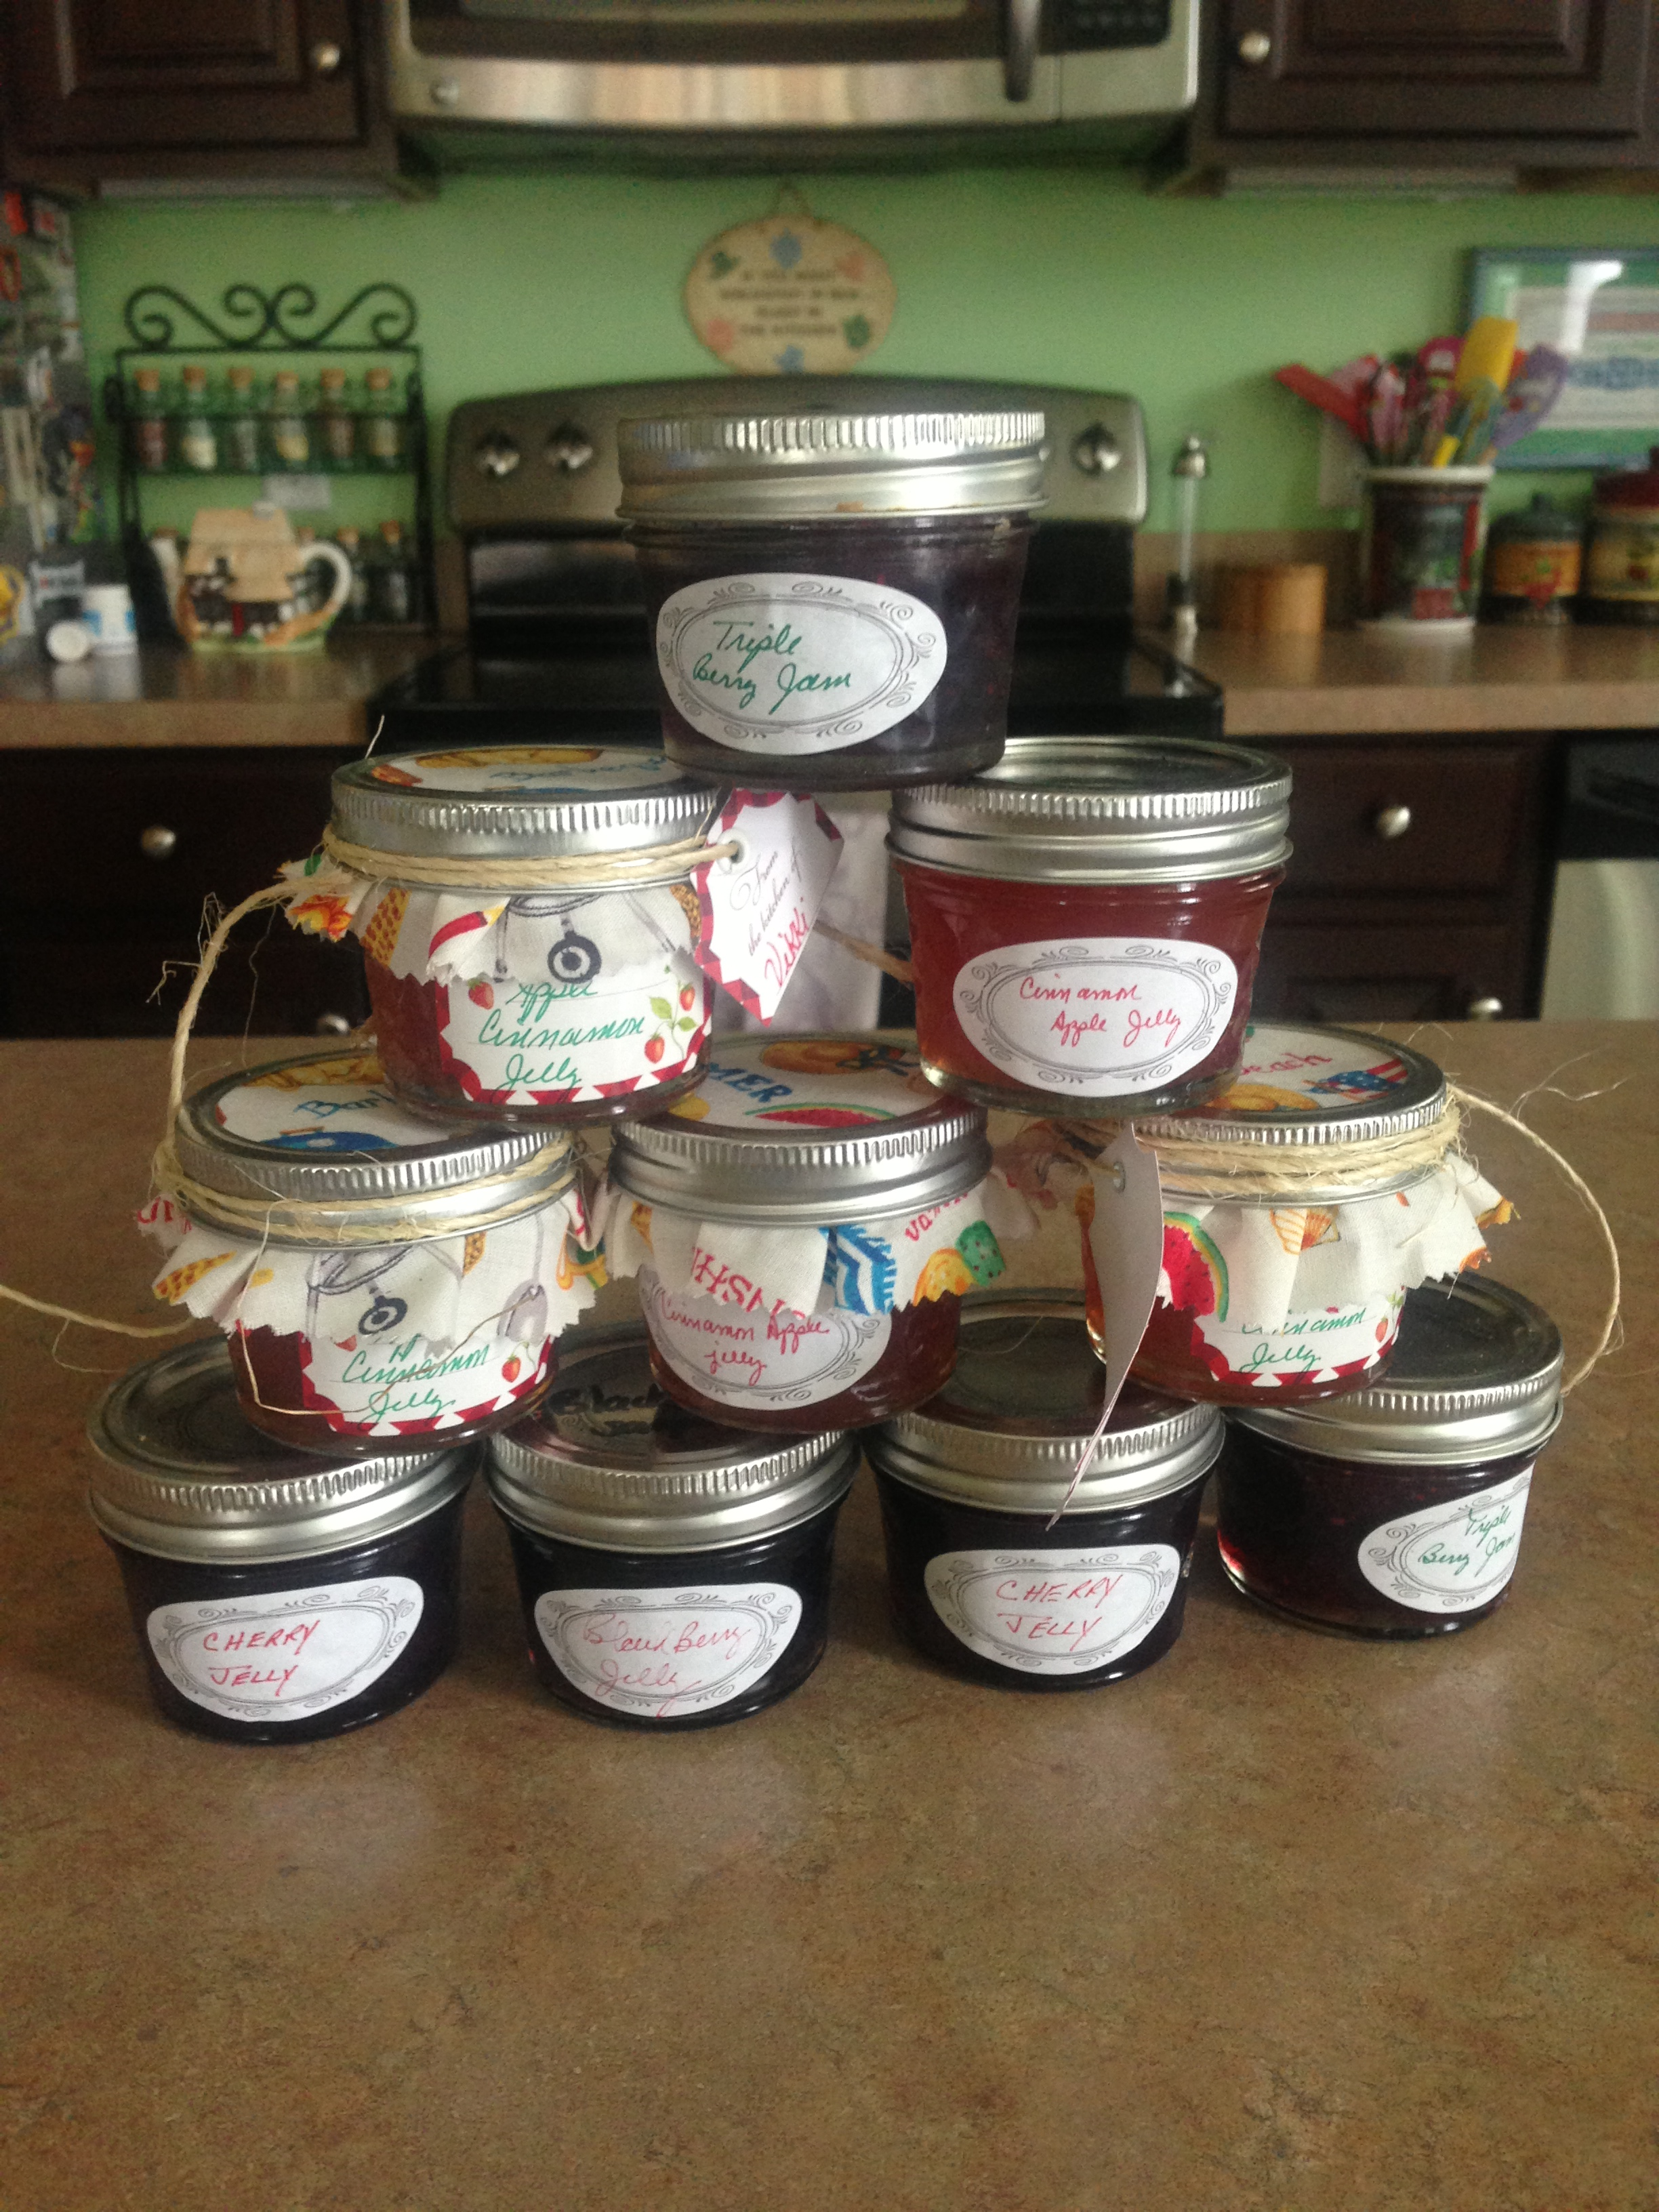 Vikki's Homemade Jellys and Treats  – Glen Allen,Va